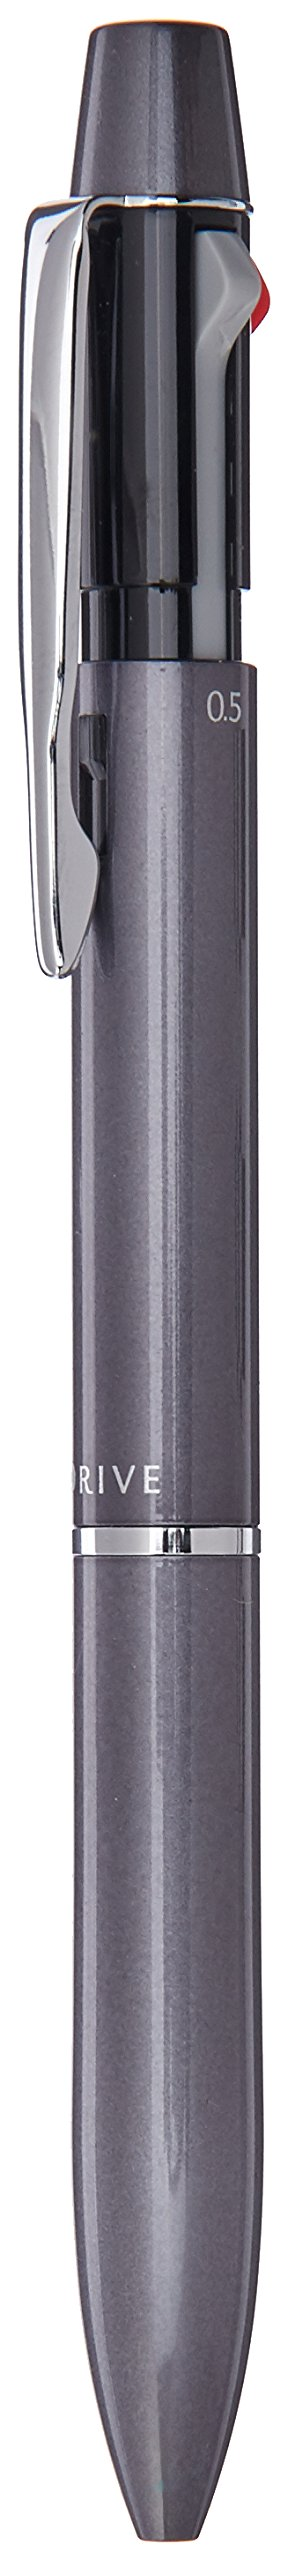 Pilot Mechanical Pencil + Ballpoint Pen, 0.7mm, Fine, Black and Red, 2+1 Acro Drive, Grey (BKHD-250R-GY)